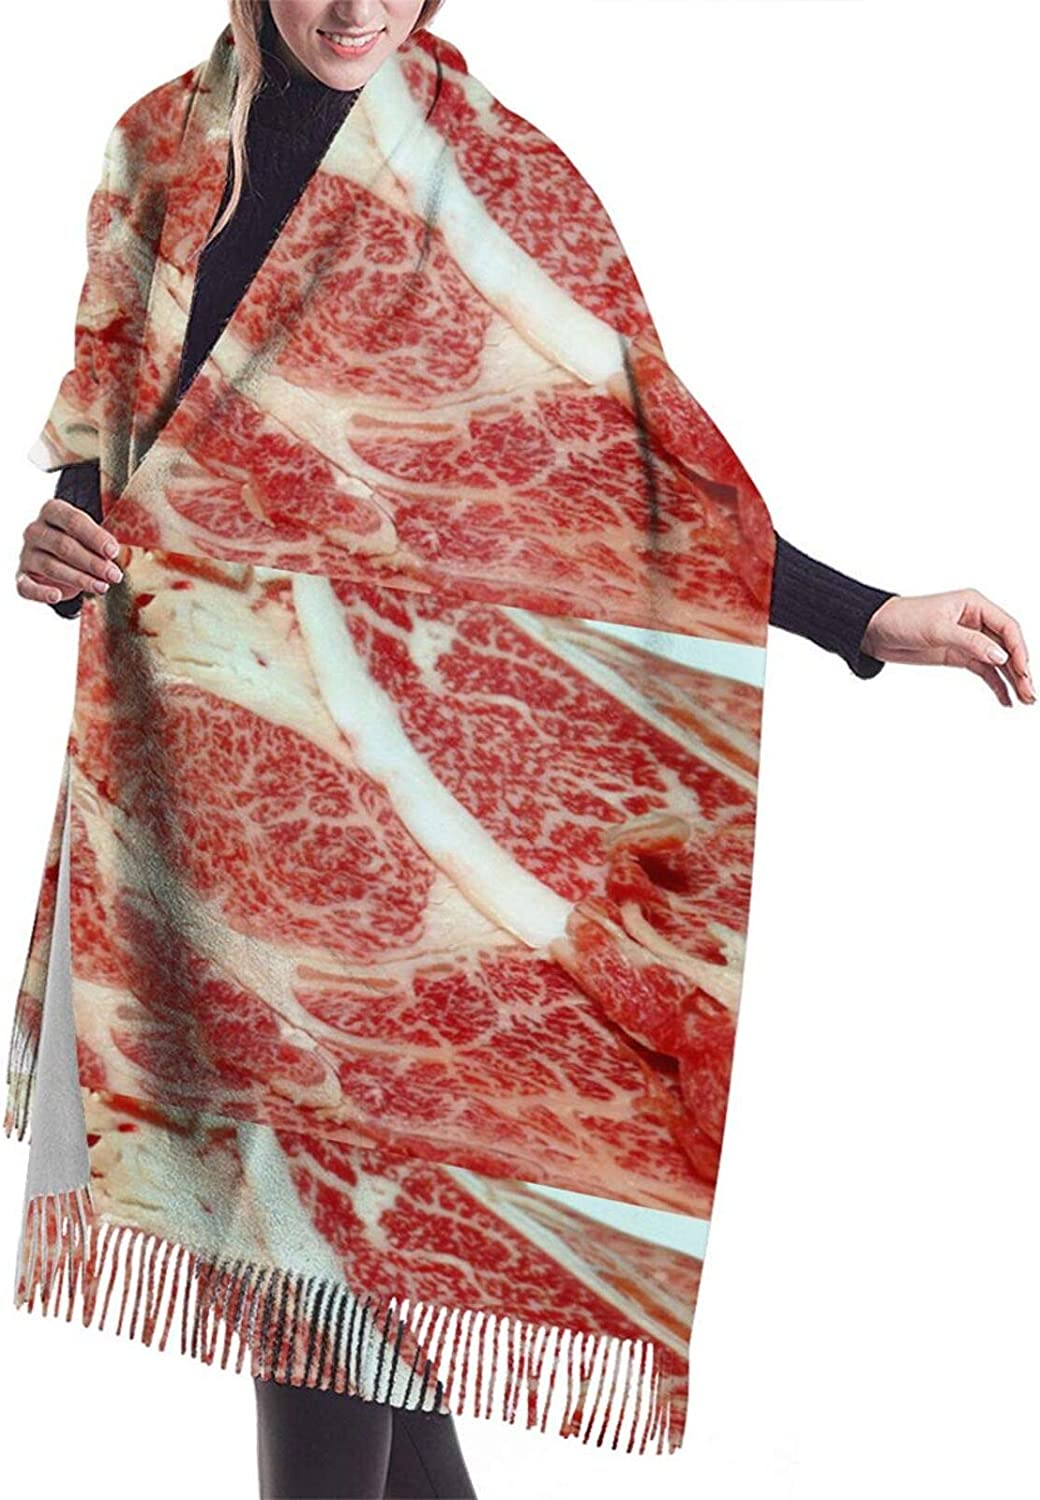 Meat Texture Pattern Cashmere Feel Scarf Lightweight Soft Scarfs For Boys Girls Creative Warm Cold Weather Blanket Scarf